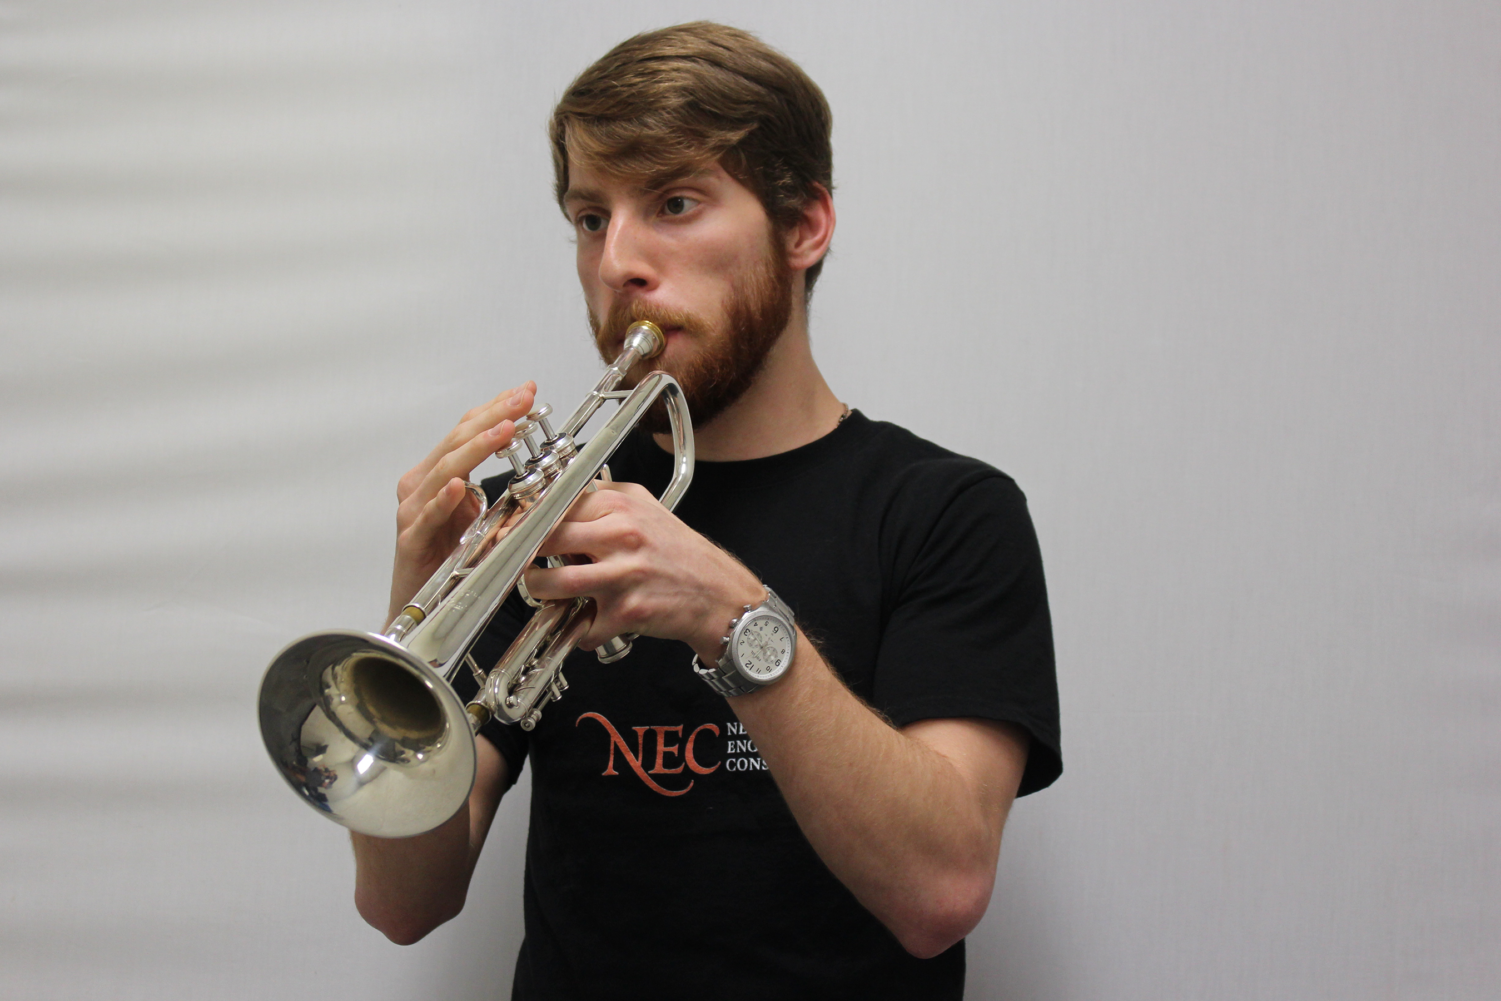 Coppell High School senior Grant Knippa practices trumpet in the CHS band hall practice rooms during sixth period. Knippa plans to attend New England Conservatory of Music in Boston to pursue a career in classical music.